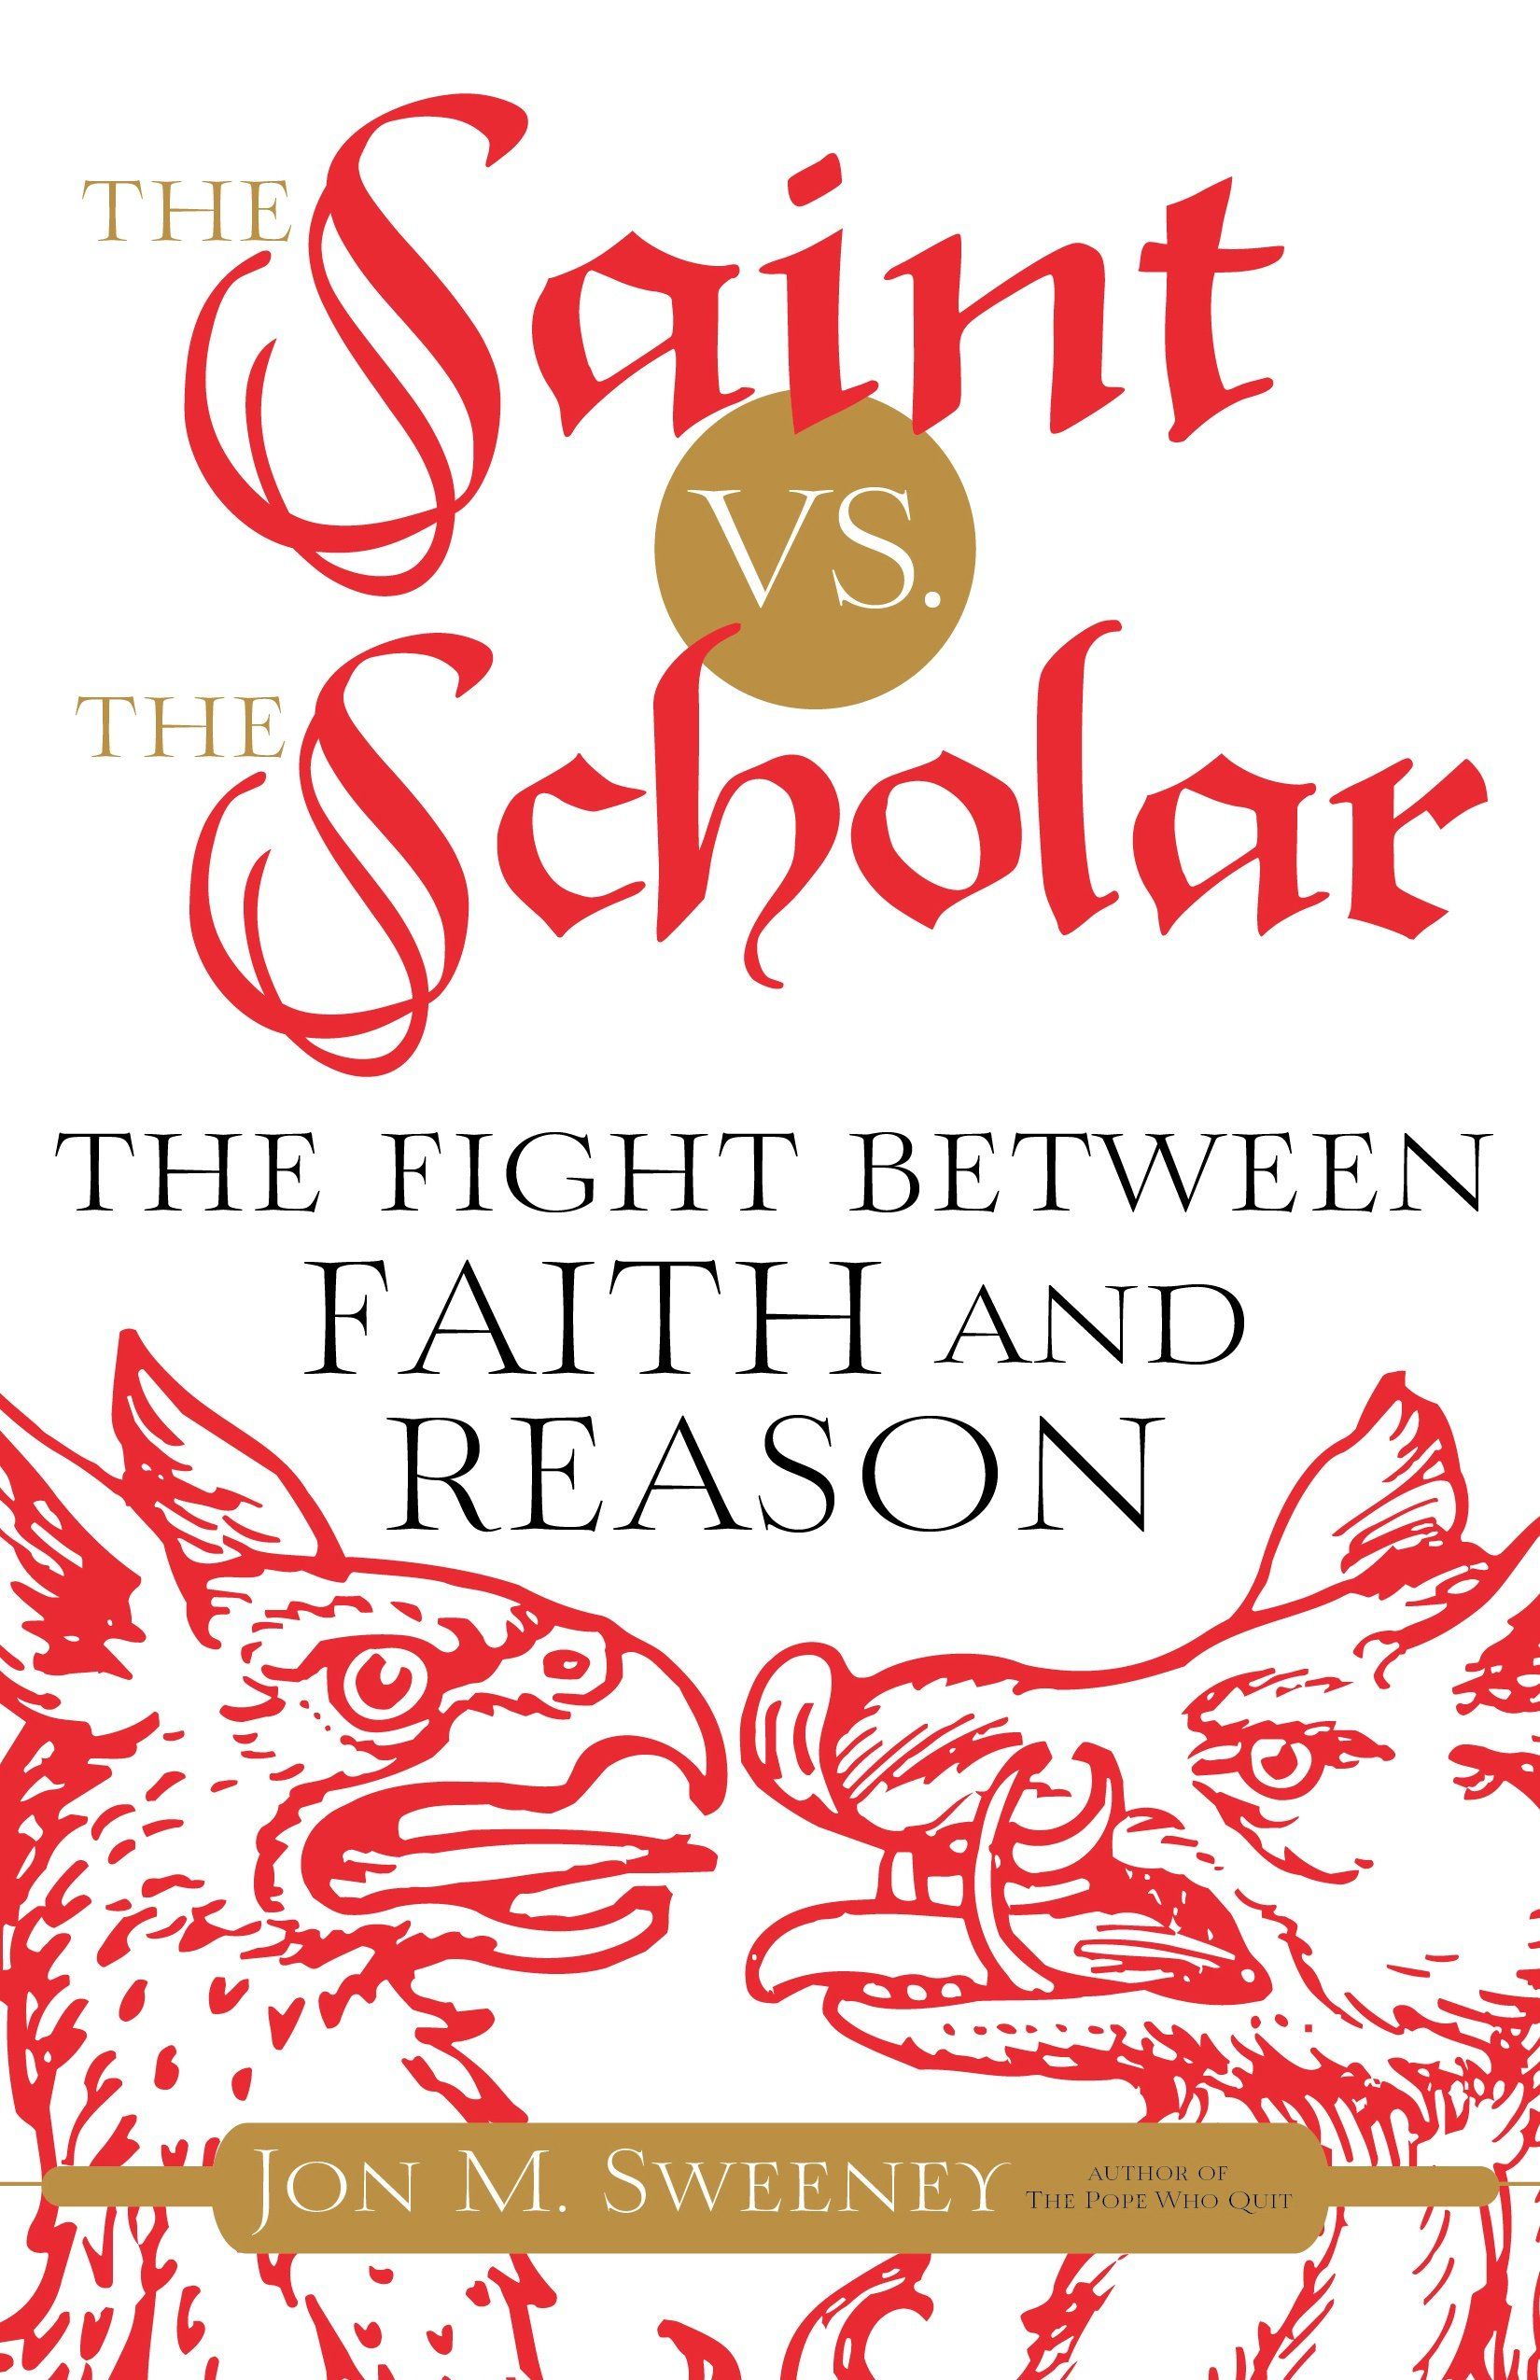 The_Saint_vs_the_Scholar.jpg